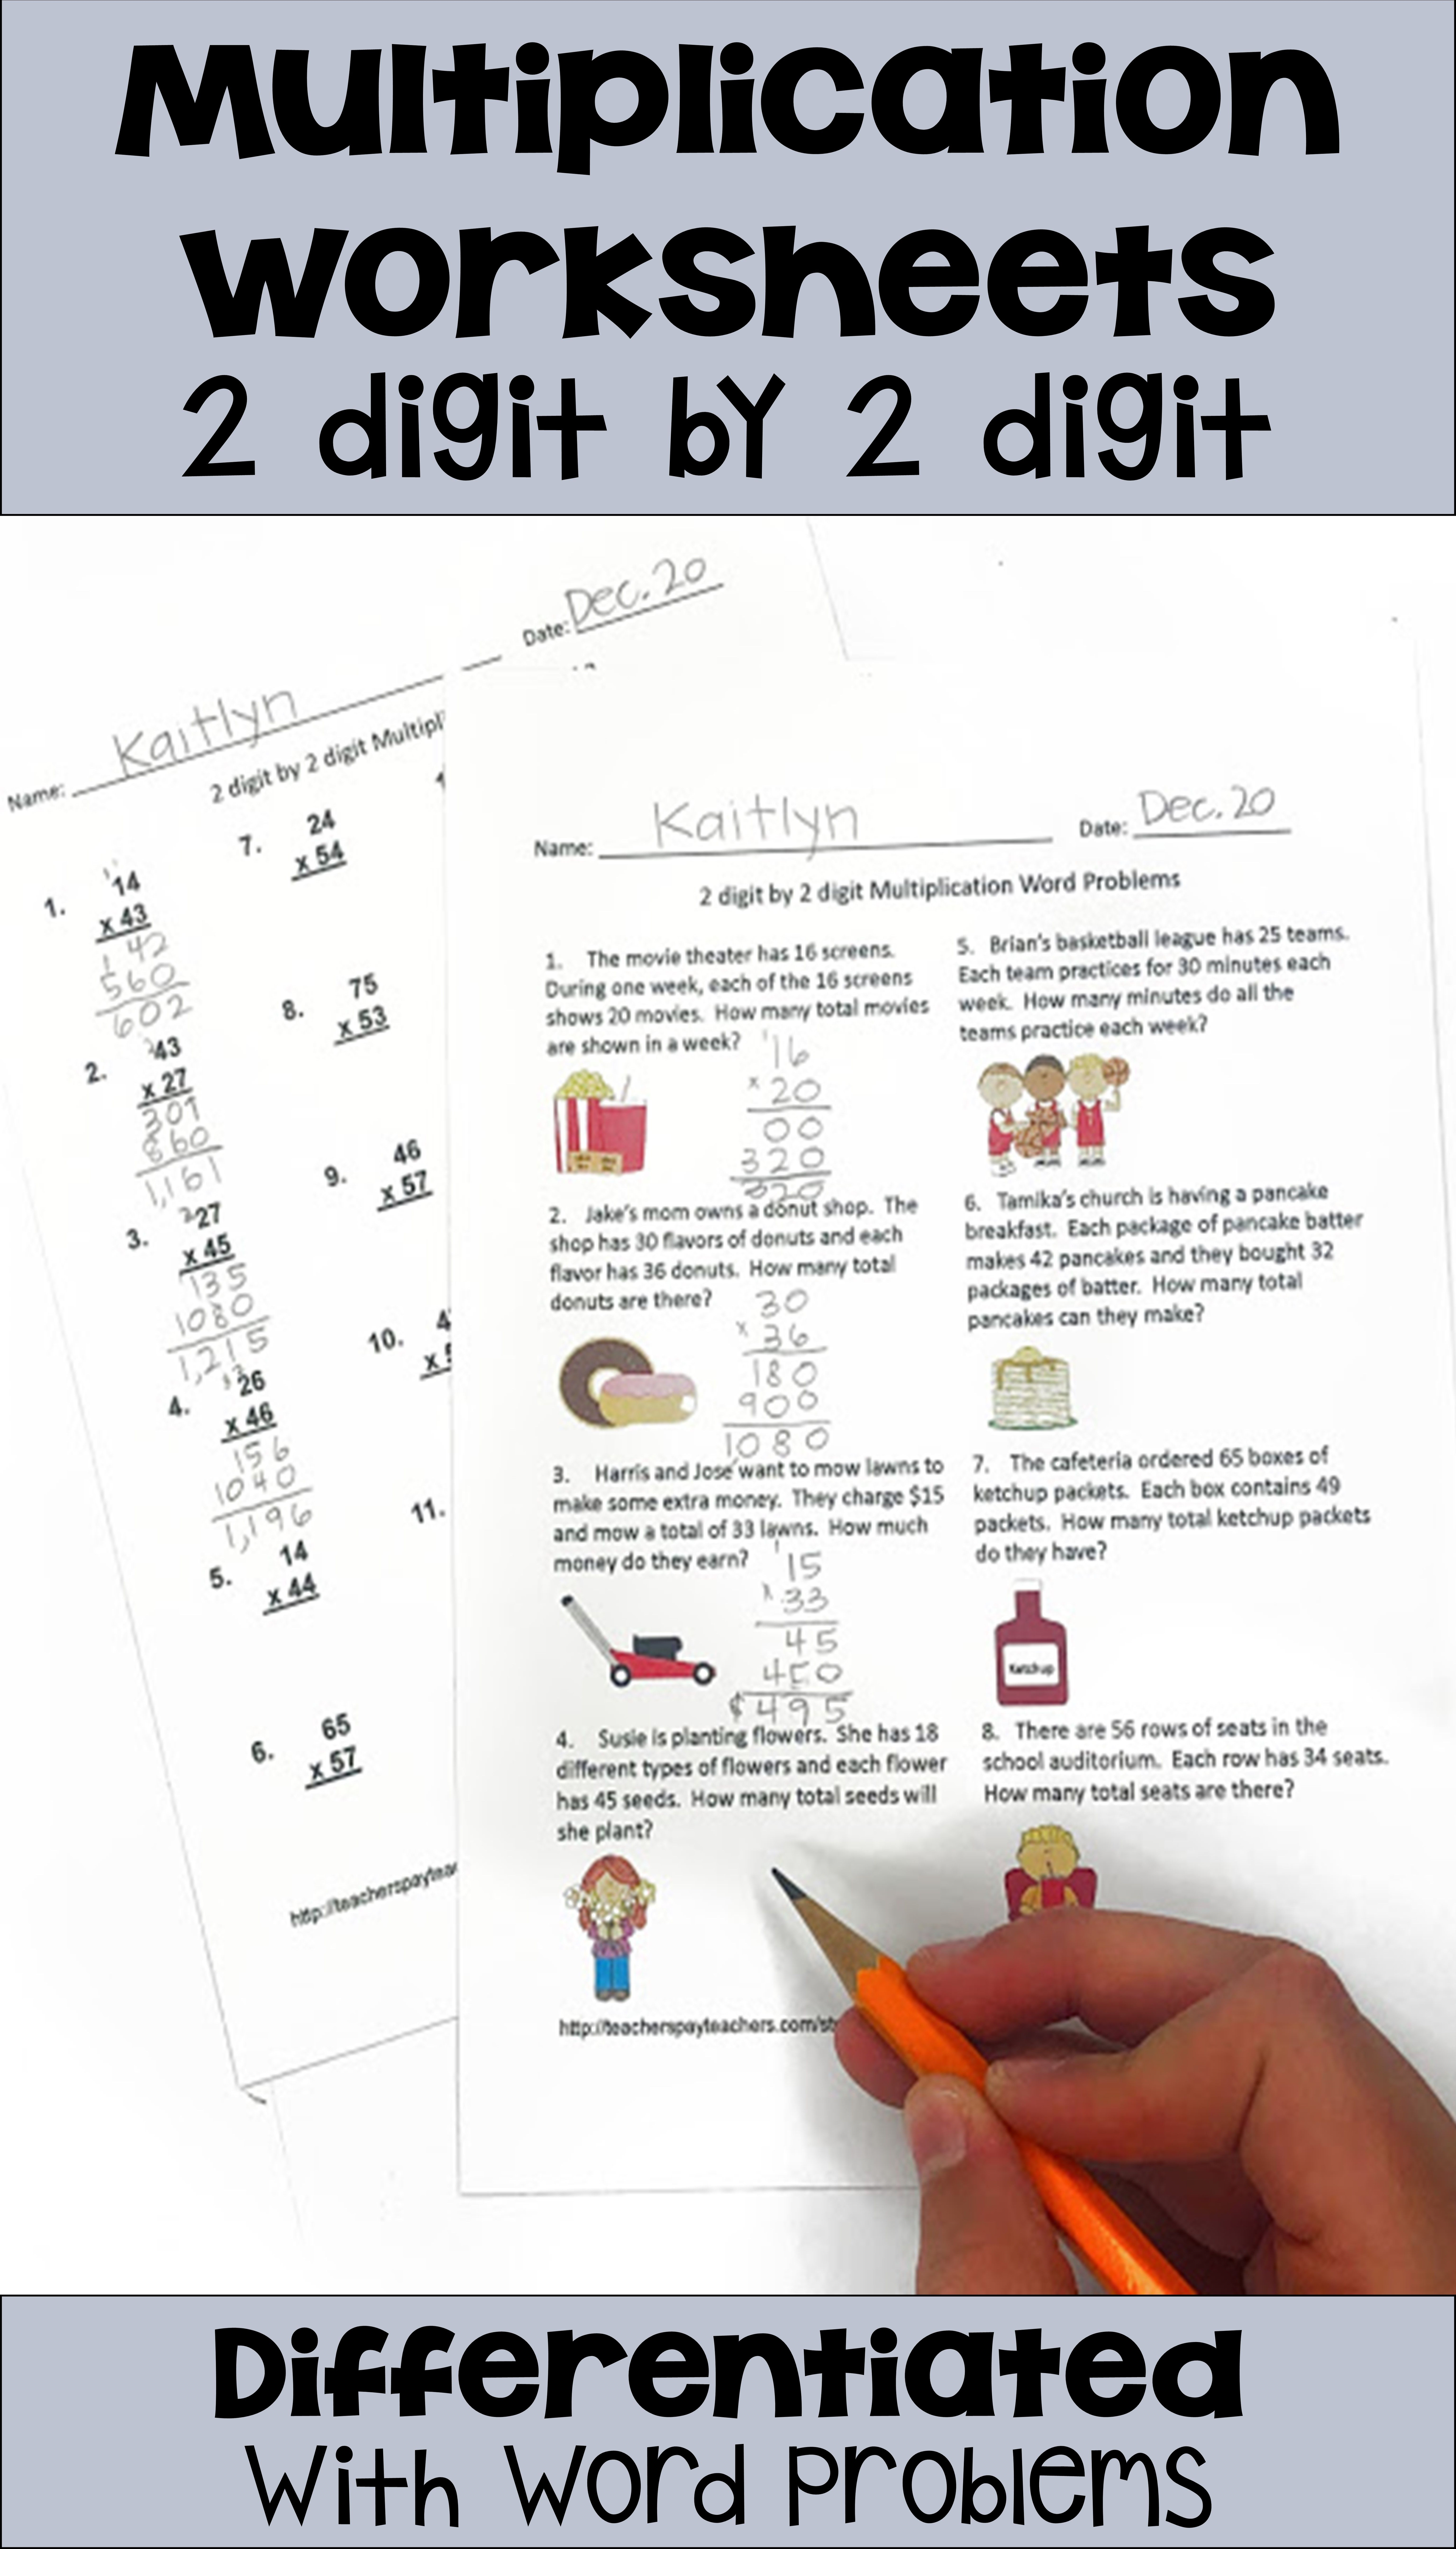 Multiplication Worksheets 2 Digit By 2 Digit 3 Levels